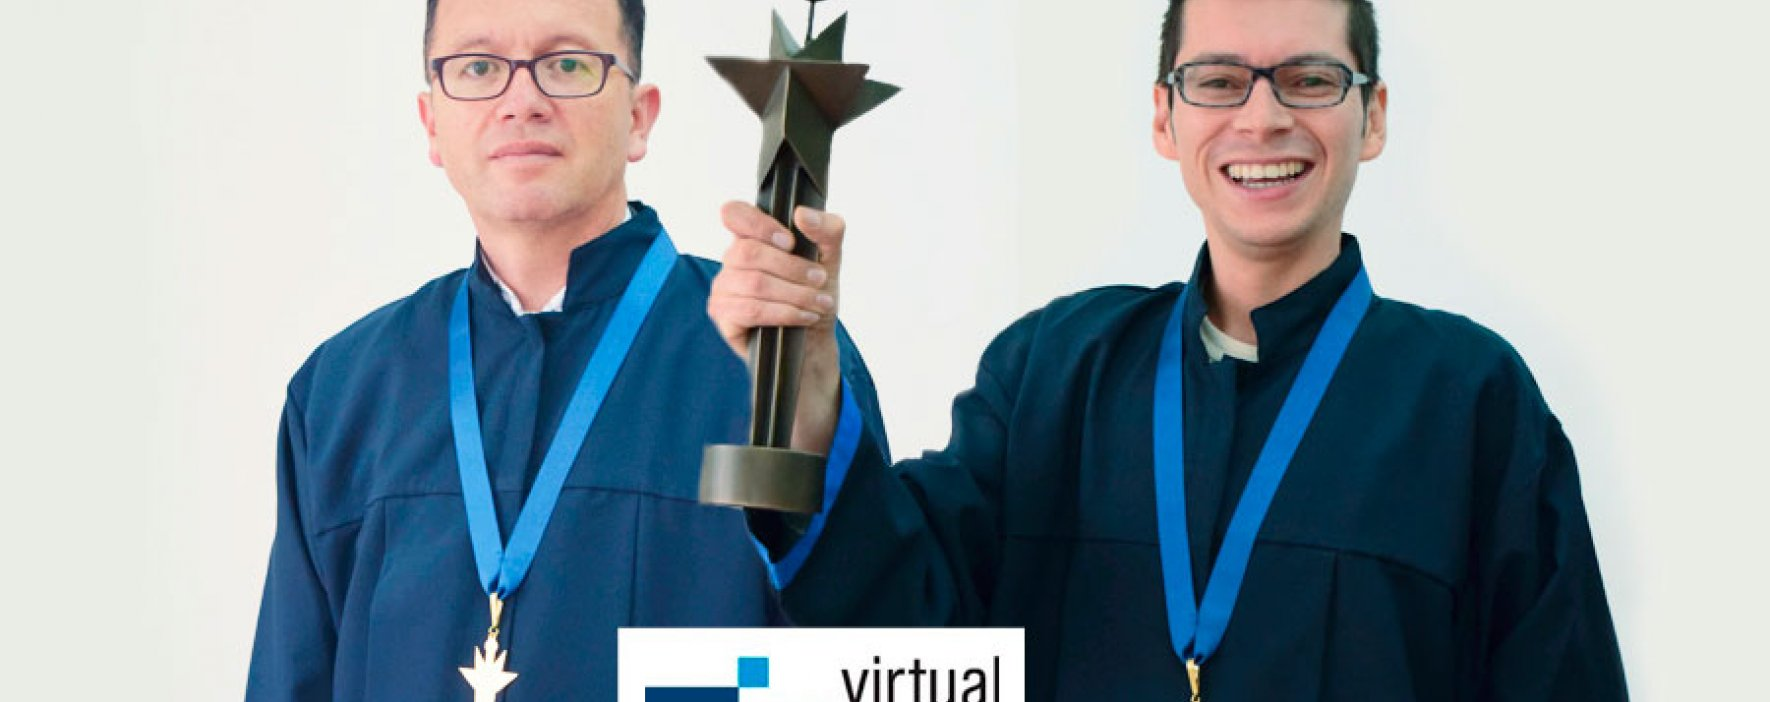 En Virtual Educa encuentre: ¡A postularse al Premio Compartir!